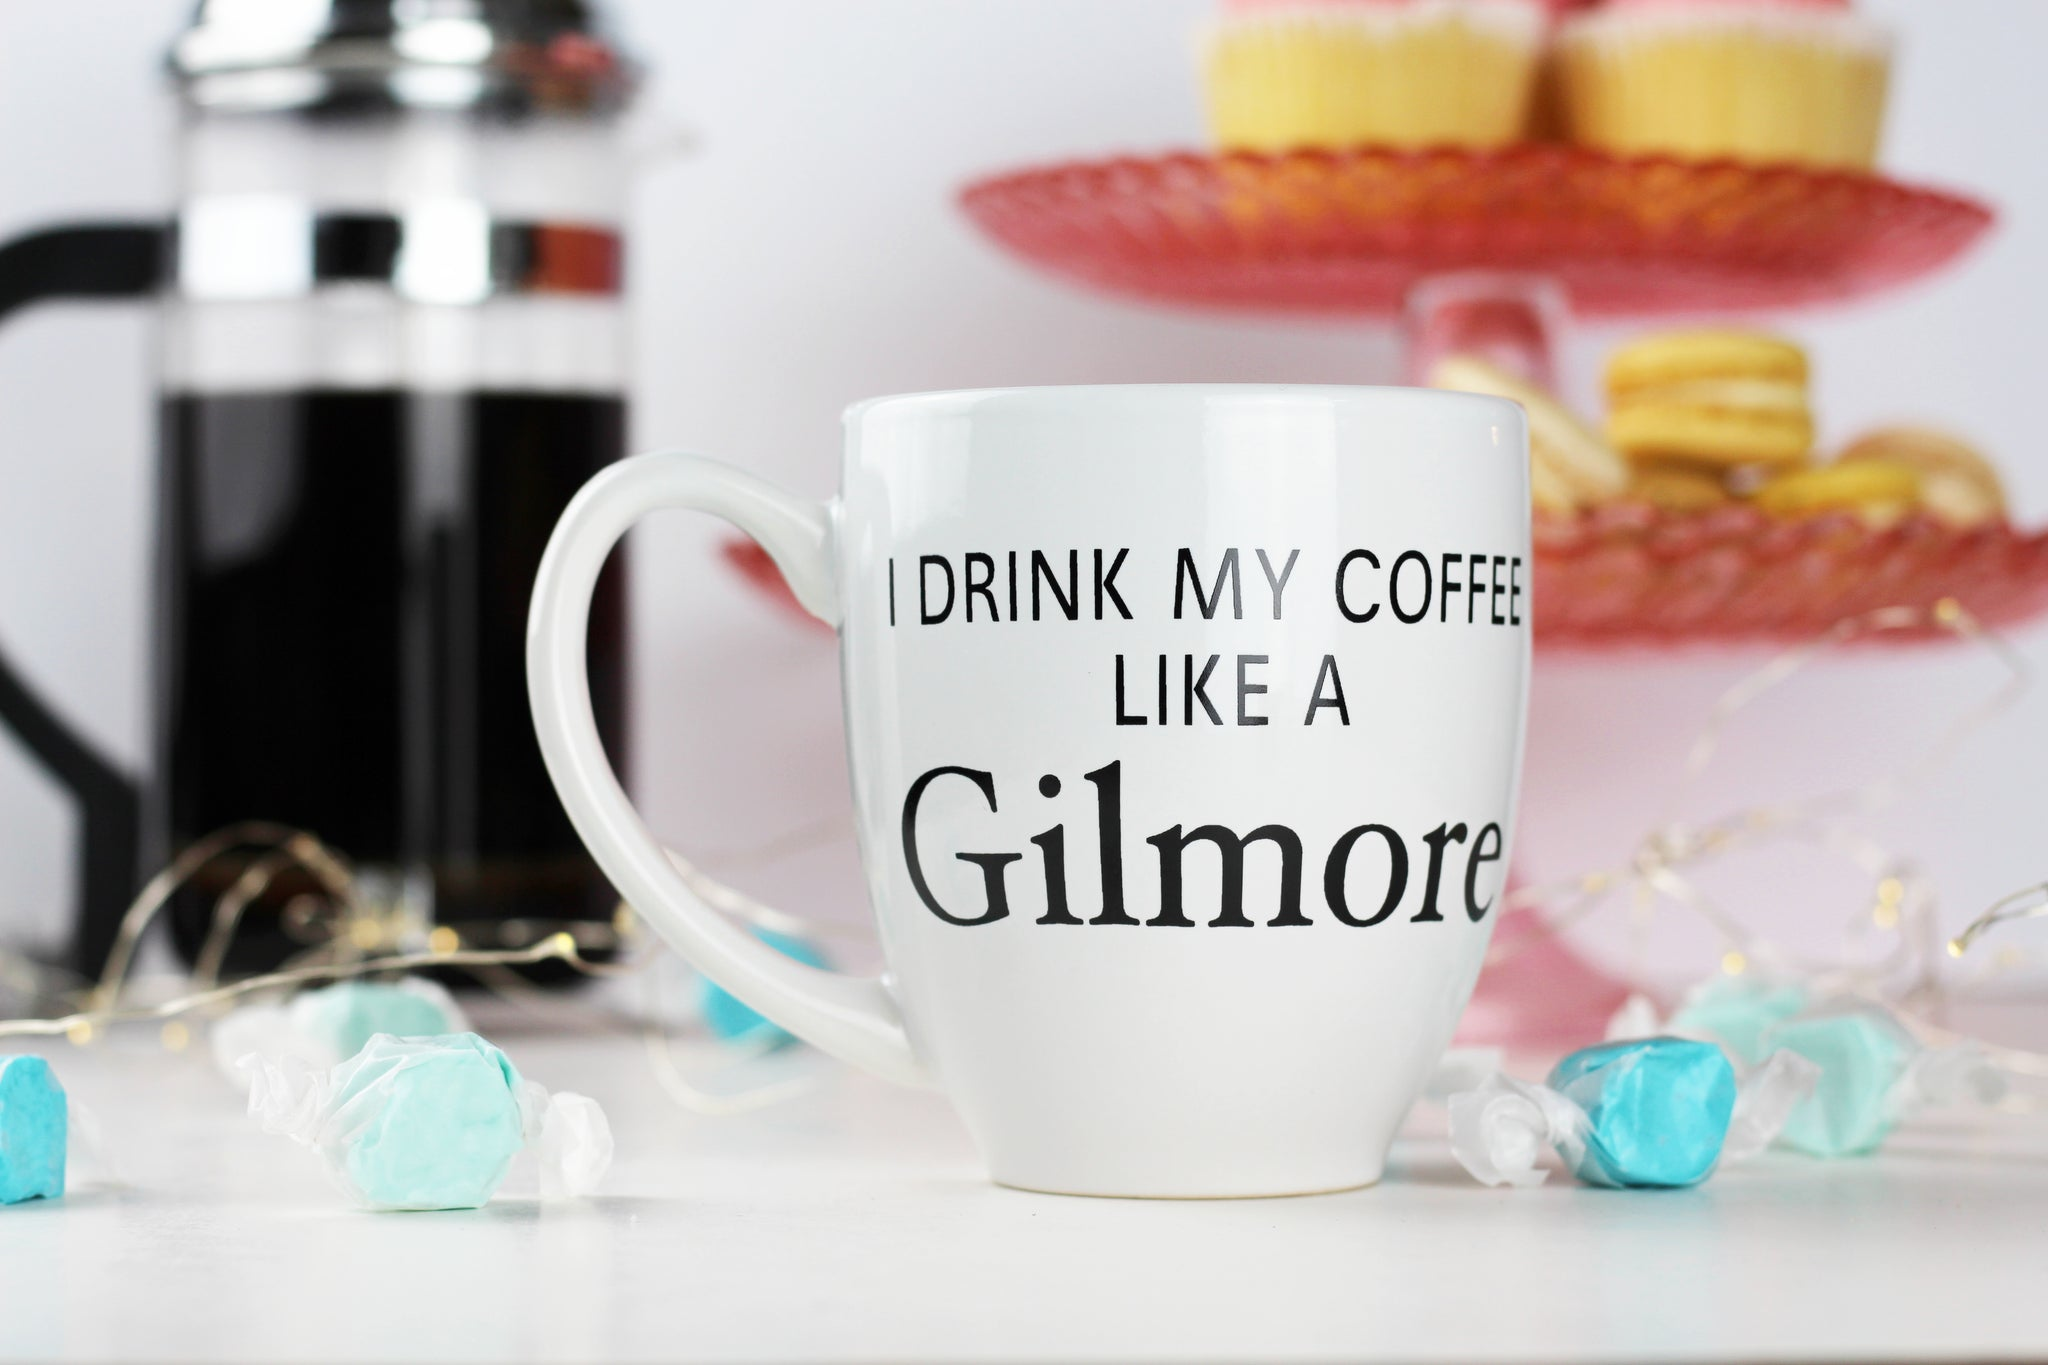 I drink my coffee like a Gilmore